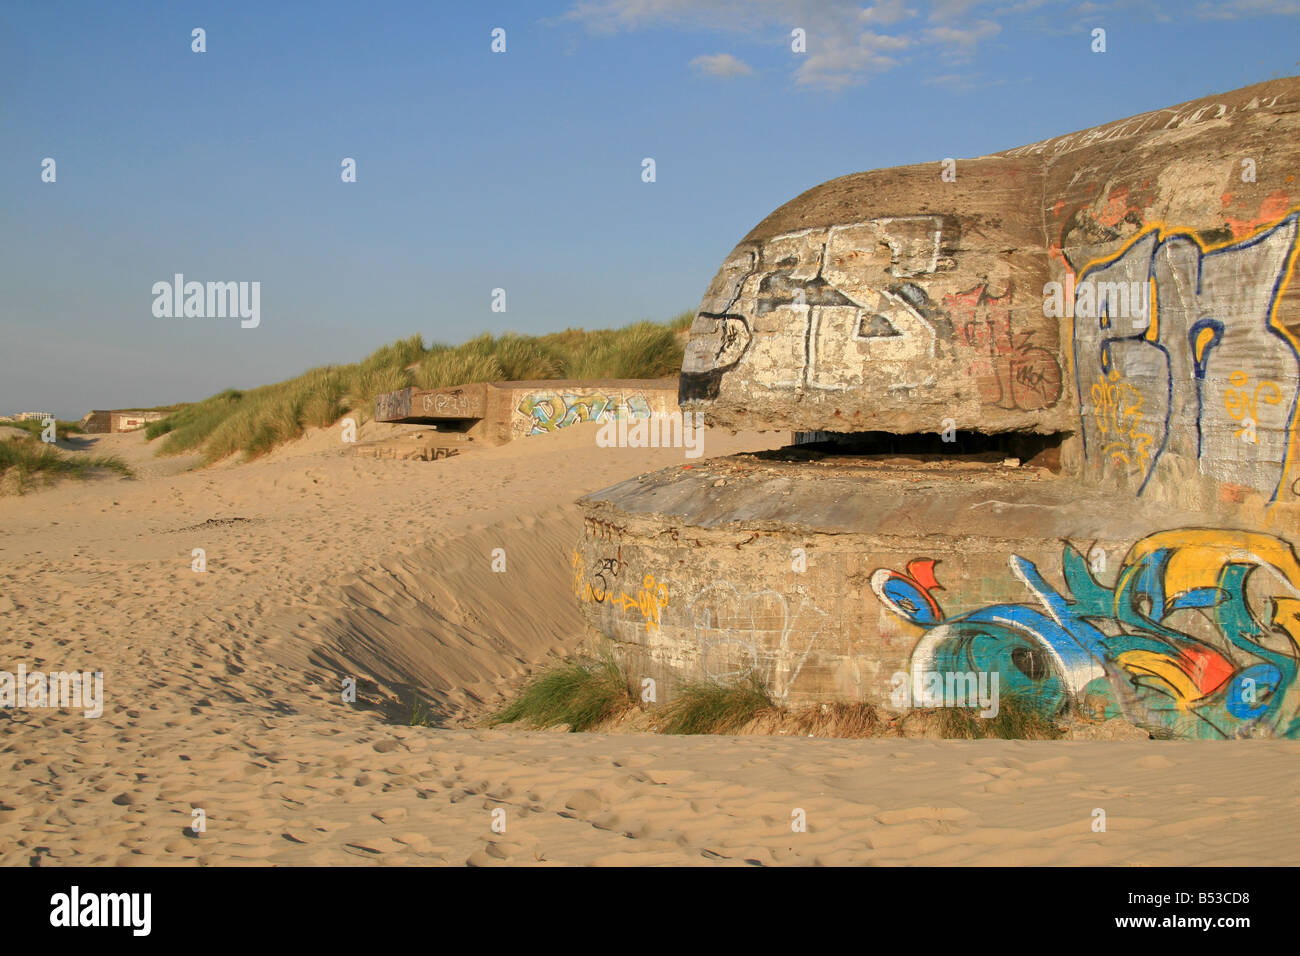 A German concrete bunker, part of Hitlers Atlantic Wall, at Dunkerque (Dunkirk), northern France. Stock Photo